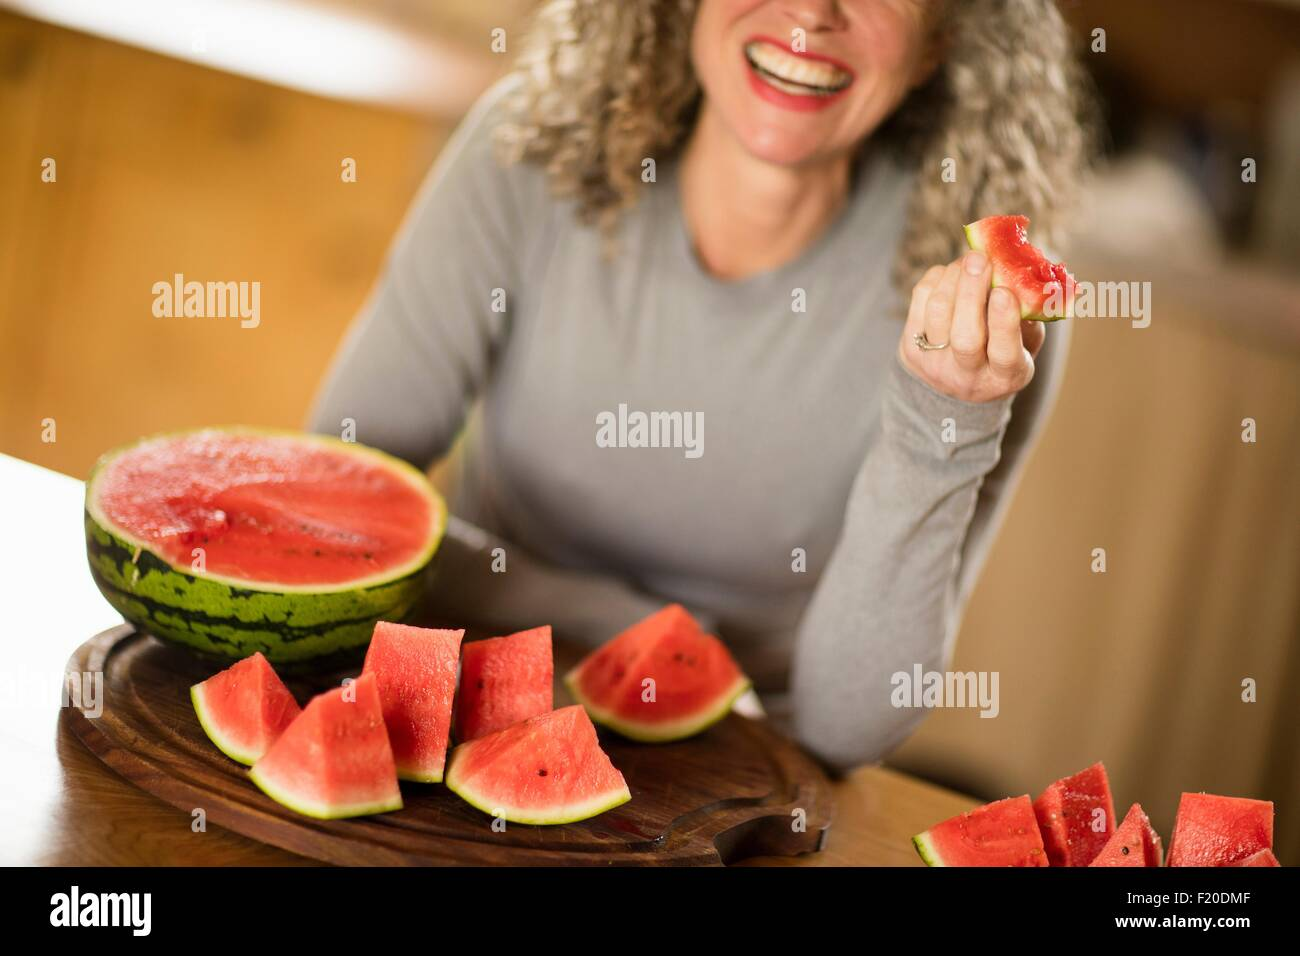 Young woman eating watermelon in kitchen Photo Stock